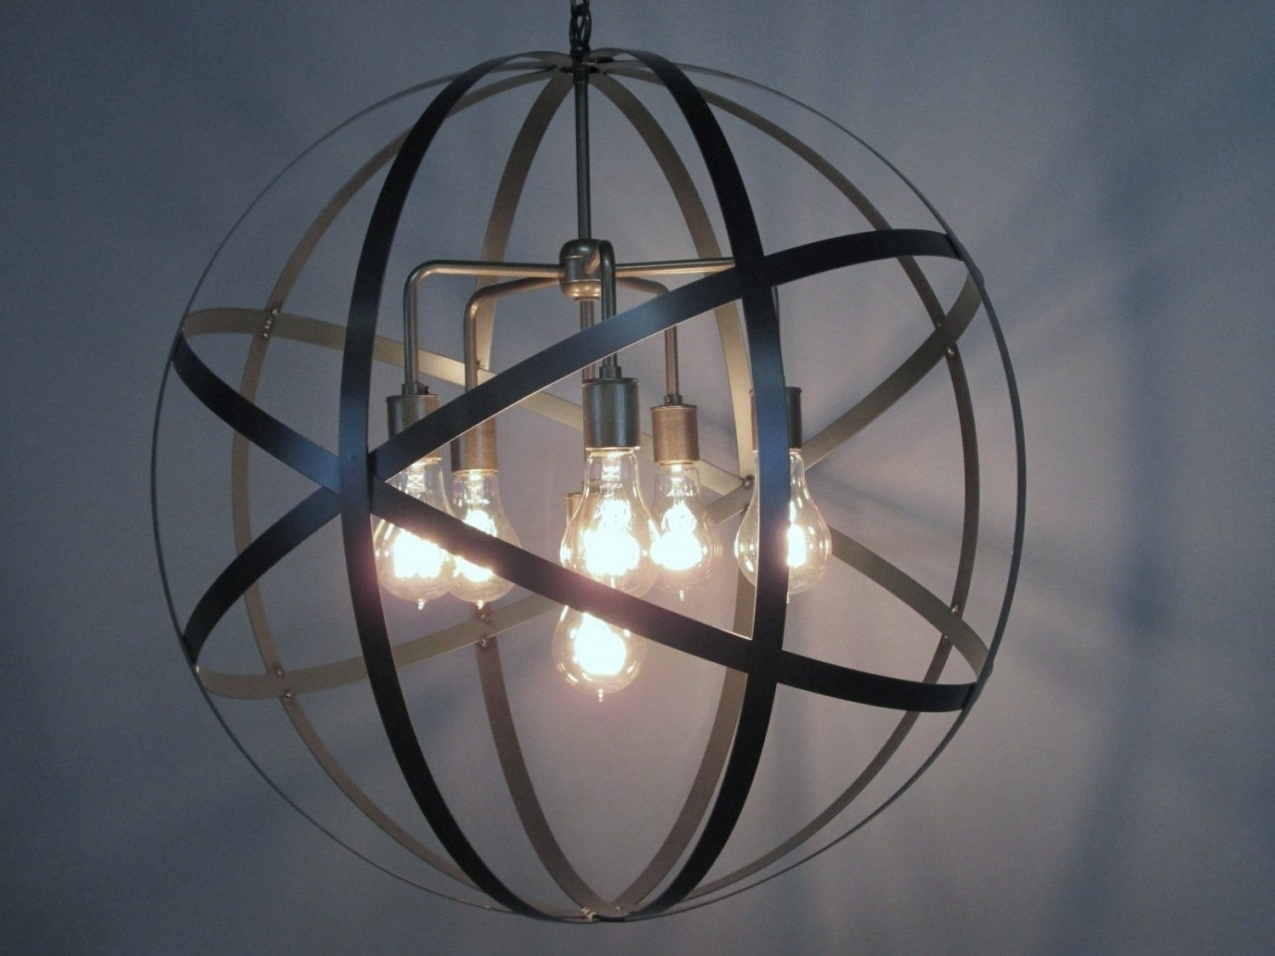 Trendy Orb Chandeliers For Accessories: Globe Metal Design Orb Chandelier With Lights Bulb (View 6 of 20)